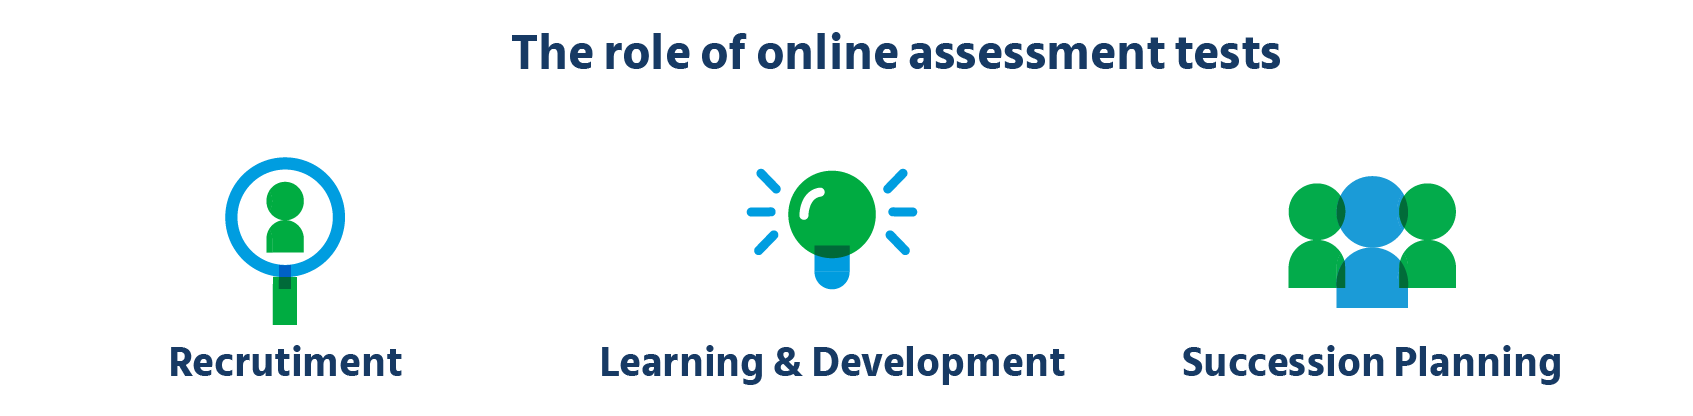 the role of online assessments in hiring and employee development